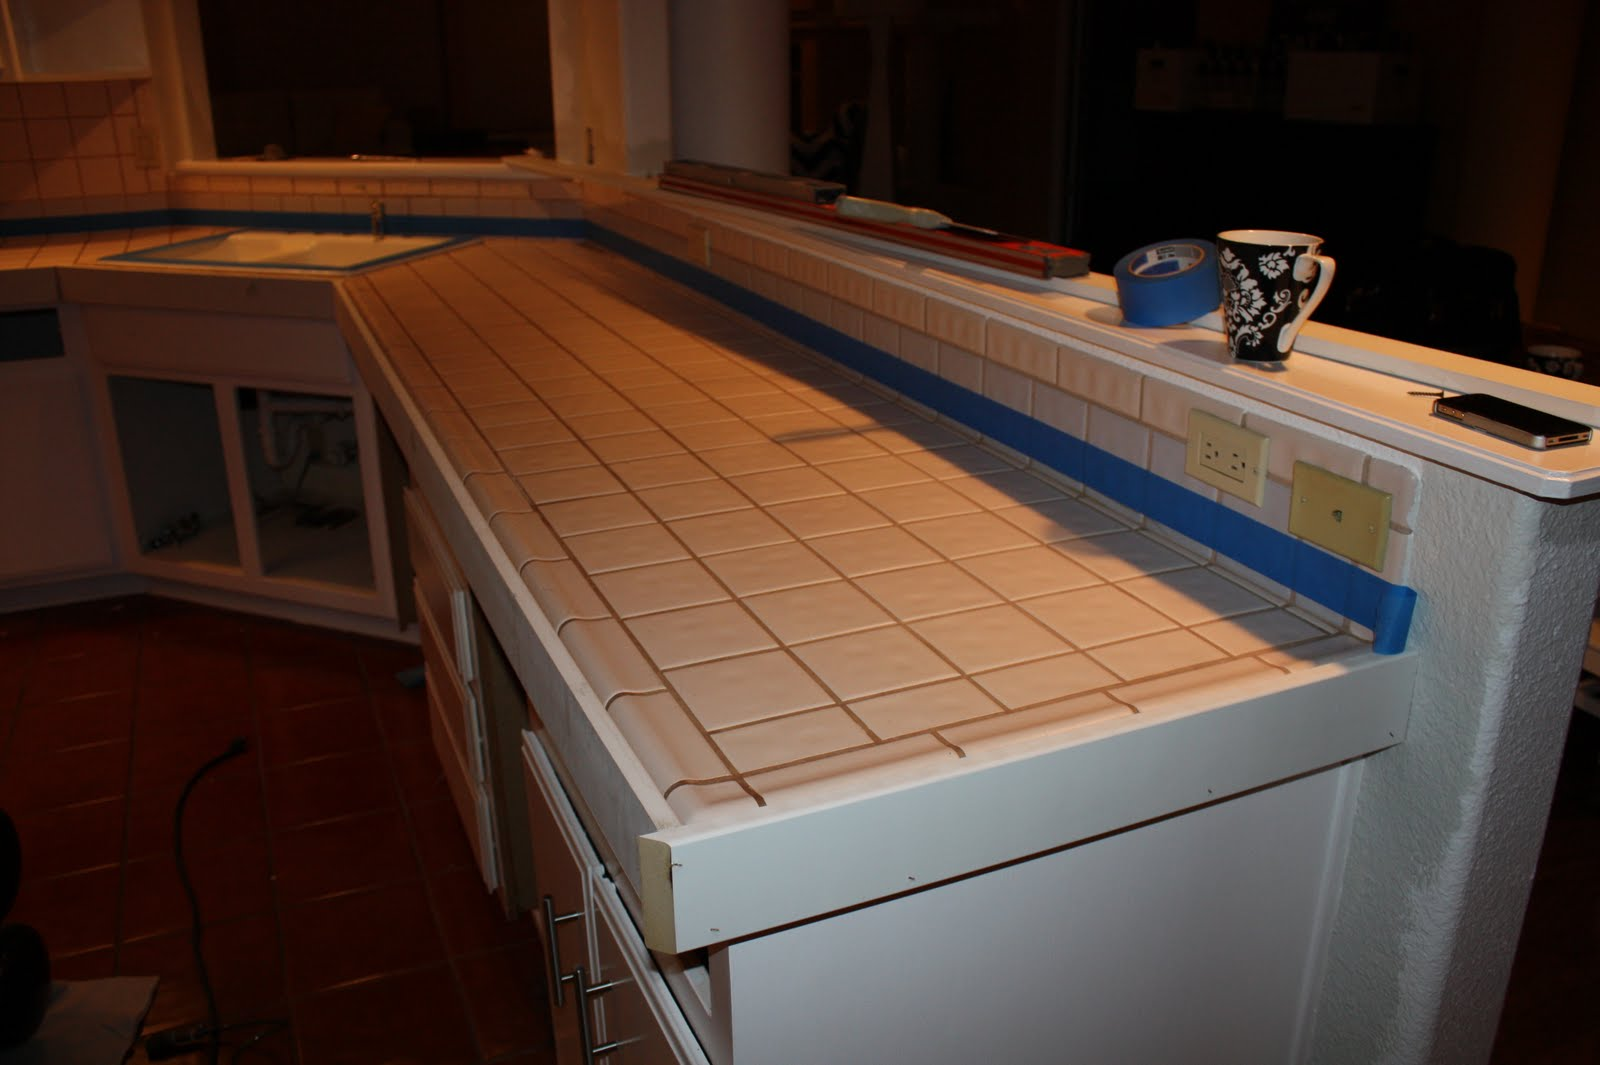 Remodelaholic | Quick Install of Concrete Countertops ...